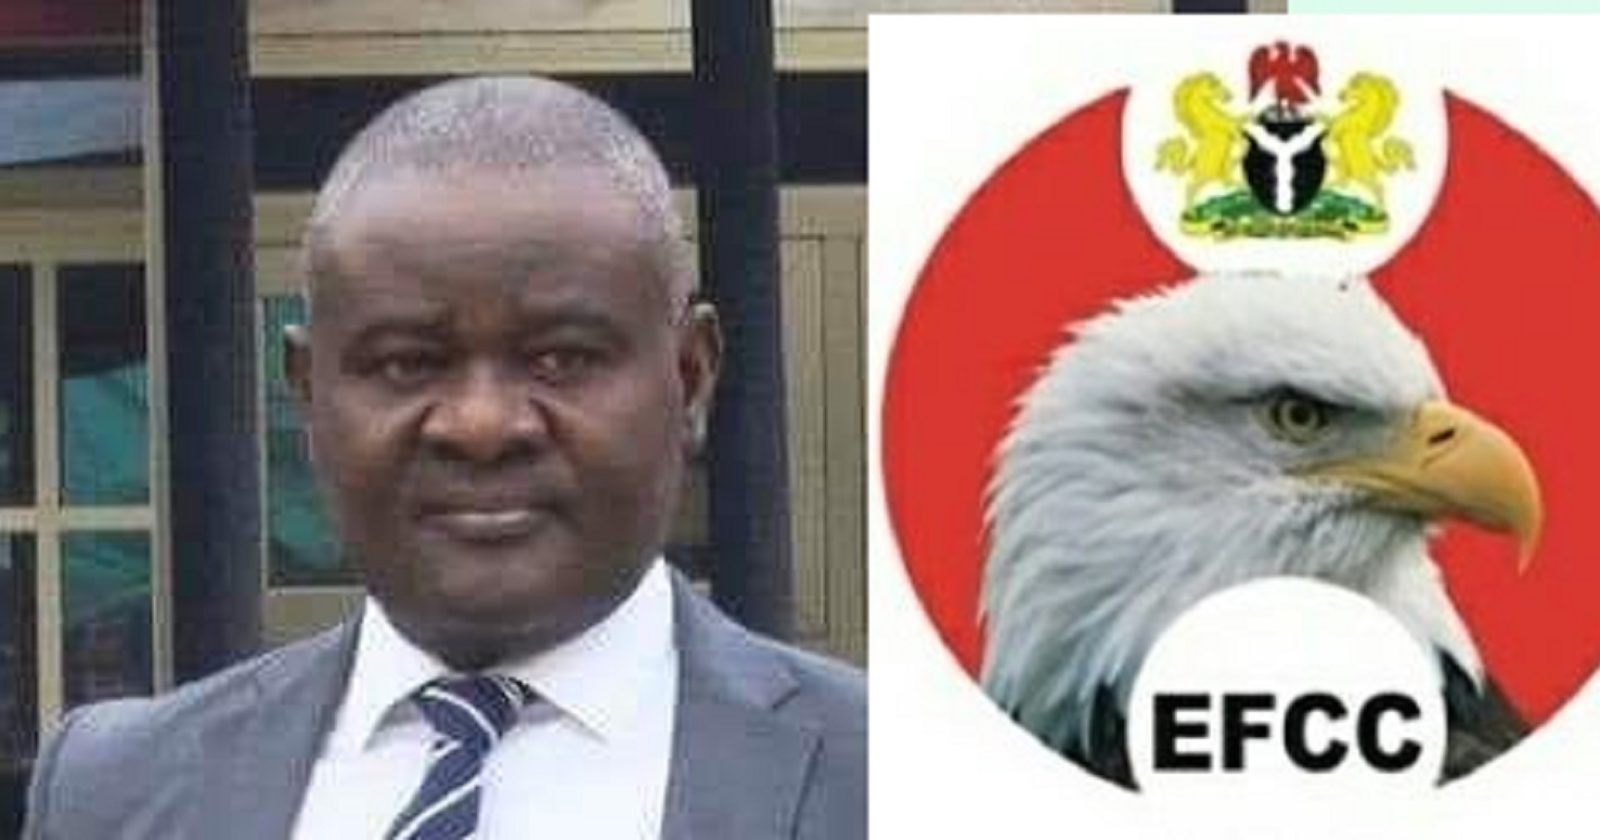 Republic Of Benin Businessman Investigated By EFCC For Alleged €29m Fraud, Dies In Prison